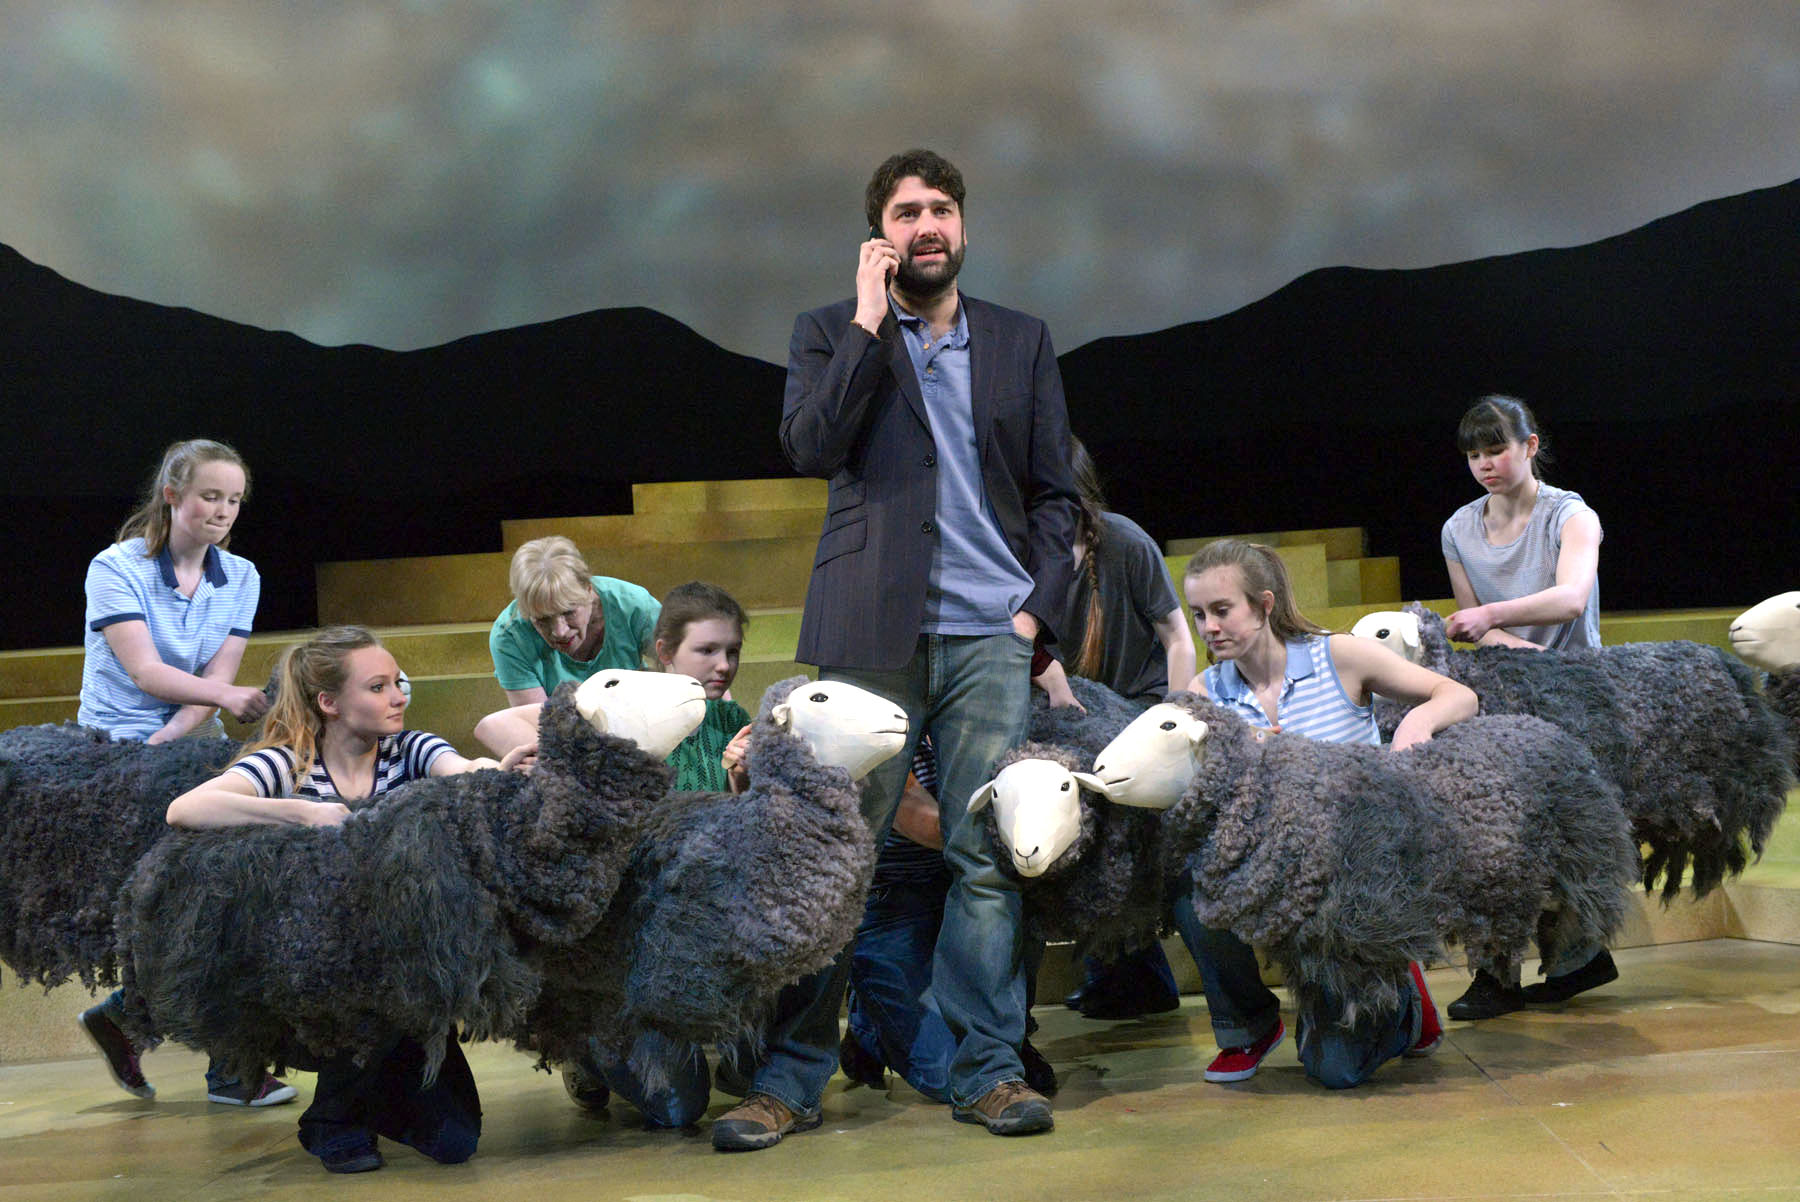 The Shepherd's Life at Theatre by the Lake, Keswick. Photo: Keith Pattison